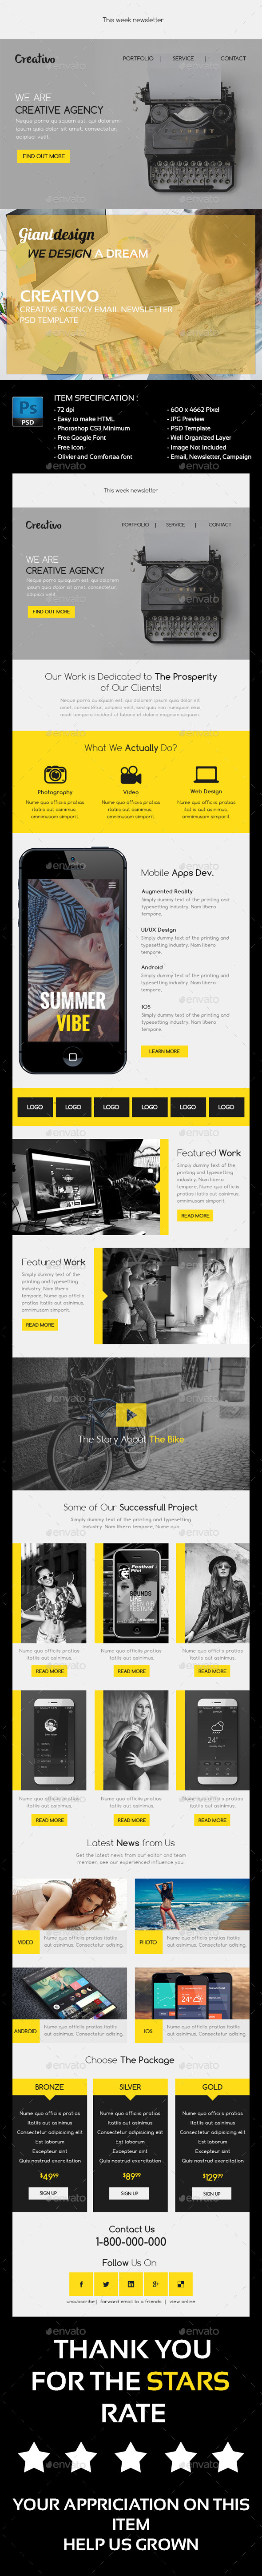 Creativo - Creative Agency Email Newsletter - E-newsletters Web Elements